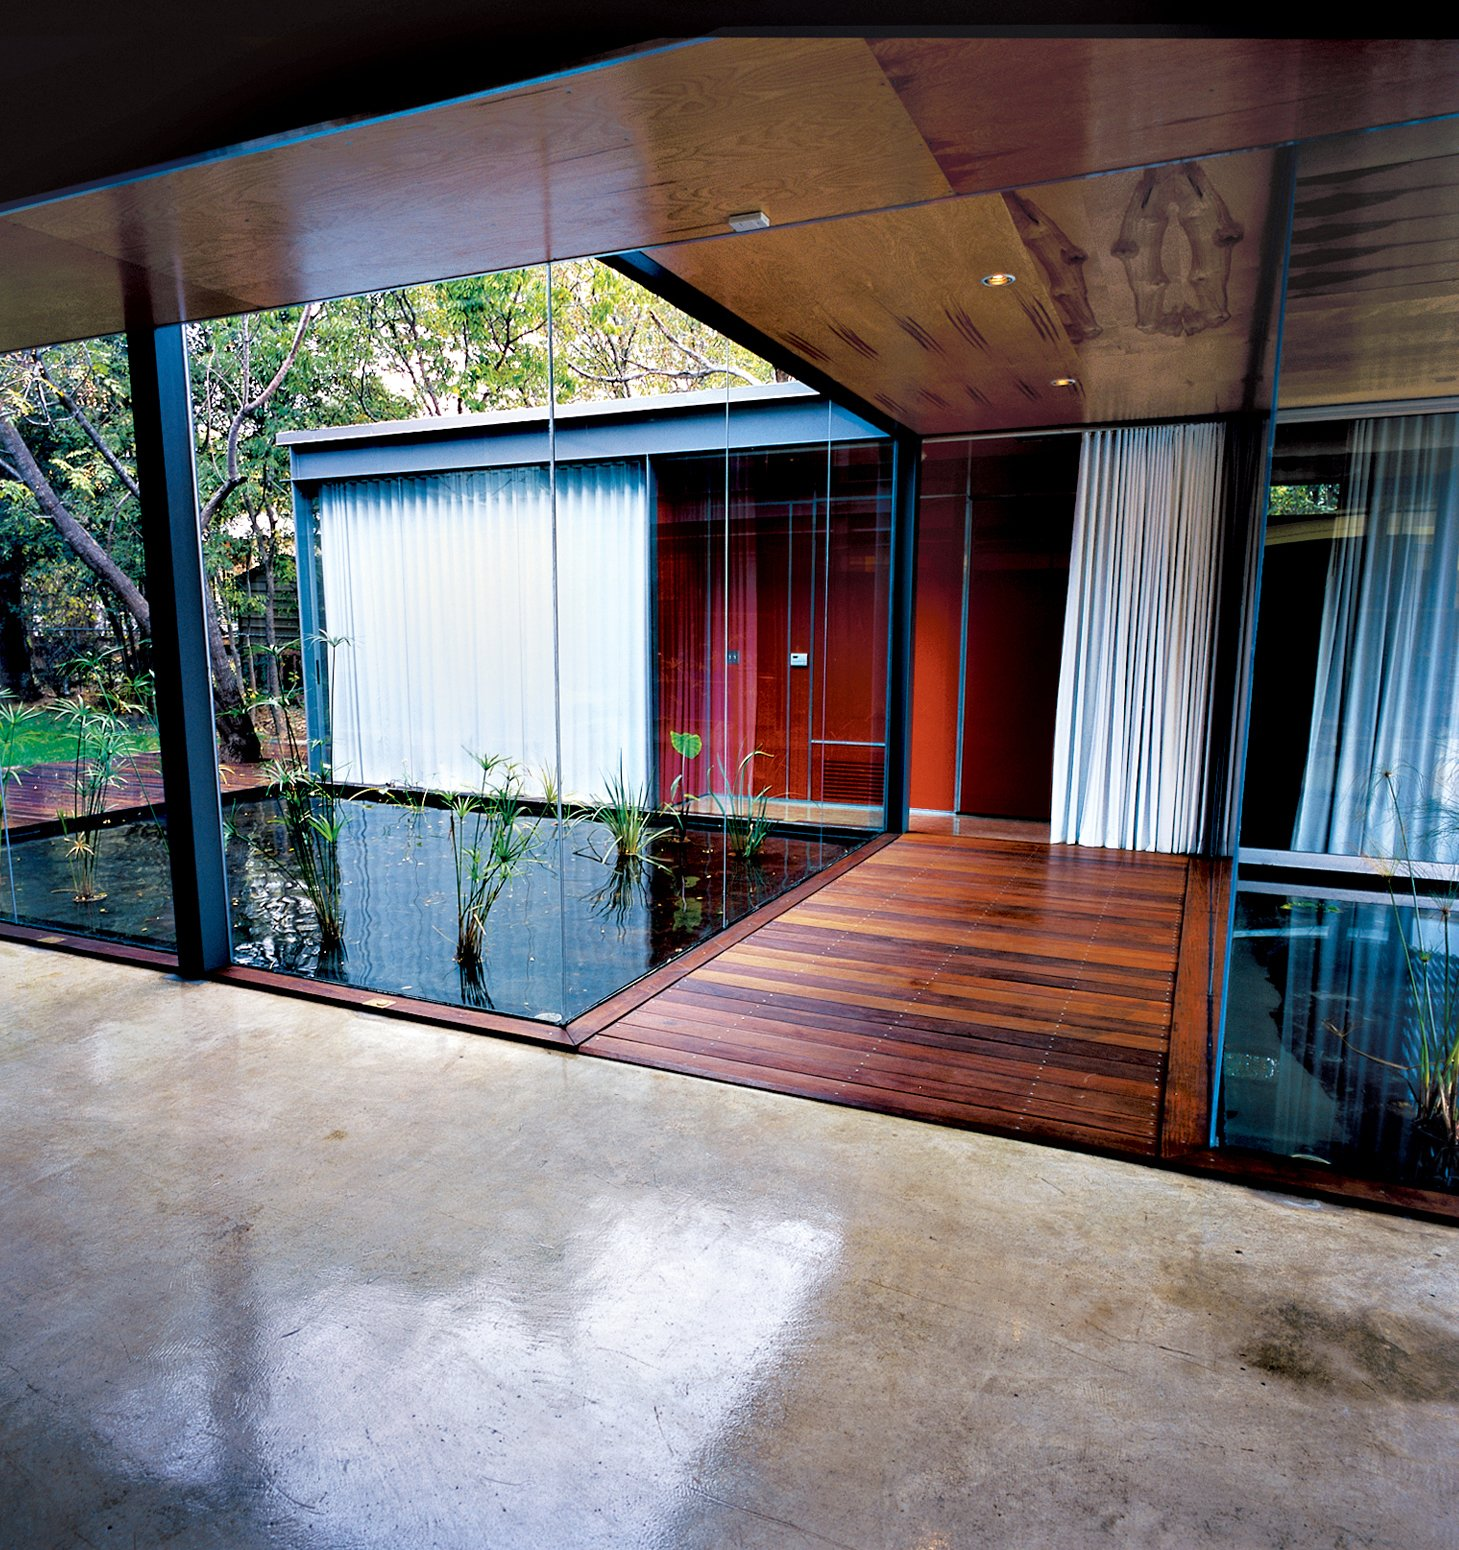 """The exterior walls of the Bercy house are constructed with Thermasteel, panels made from galvanized steel and a unique resin that provide structural framing, insulation, and vapor barrier with an R-29 rating twice the required amount. """"We have so much glass that we have to offset it by having very efficient ceiling and wall systems,"""" says Bercy. """"We wanted movable glass walls instead of tiny little sliding glass doors that pop off their tracks all the time,"""" says Bercy. So he and Chen tracked down the double-glazed, insulated, six-by-nine-foot doors rom a company called Fleetwood. """"They're a little more expensive, but when you slide the heavy doors open, you're making a profound gesture to leave the house and step outside,"""" says Bercy. The word """"doorknob"""" isn't used much around the house for the simple reason that there aren't any. """"We didn't want to clutter the house up with traditional hardware,"""" says Bercy. Instead, they used pulls found in boats that lie flush when not in use so that the doors become hinged extensions of the walls—the idea being that the door disappears and the core appears continuous."""